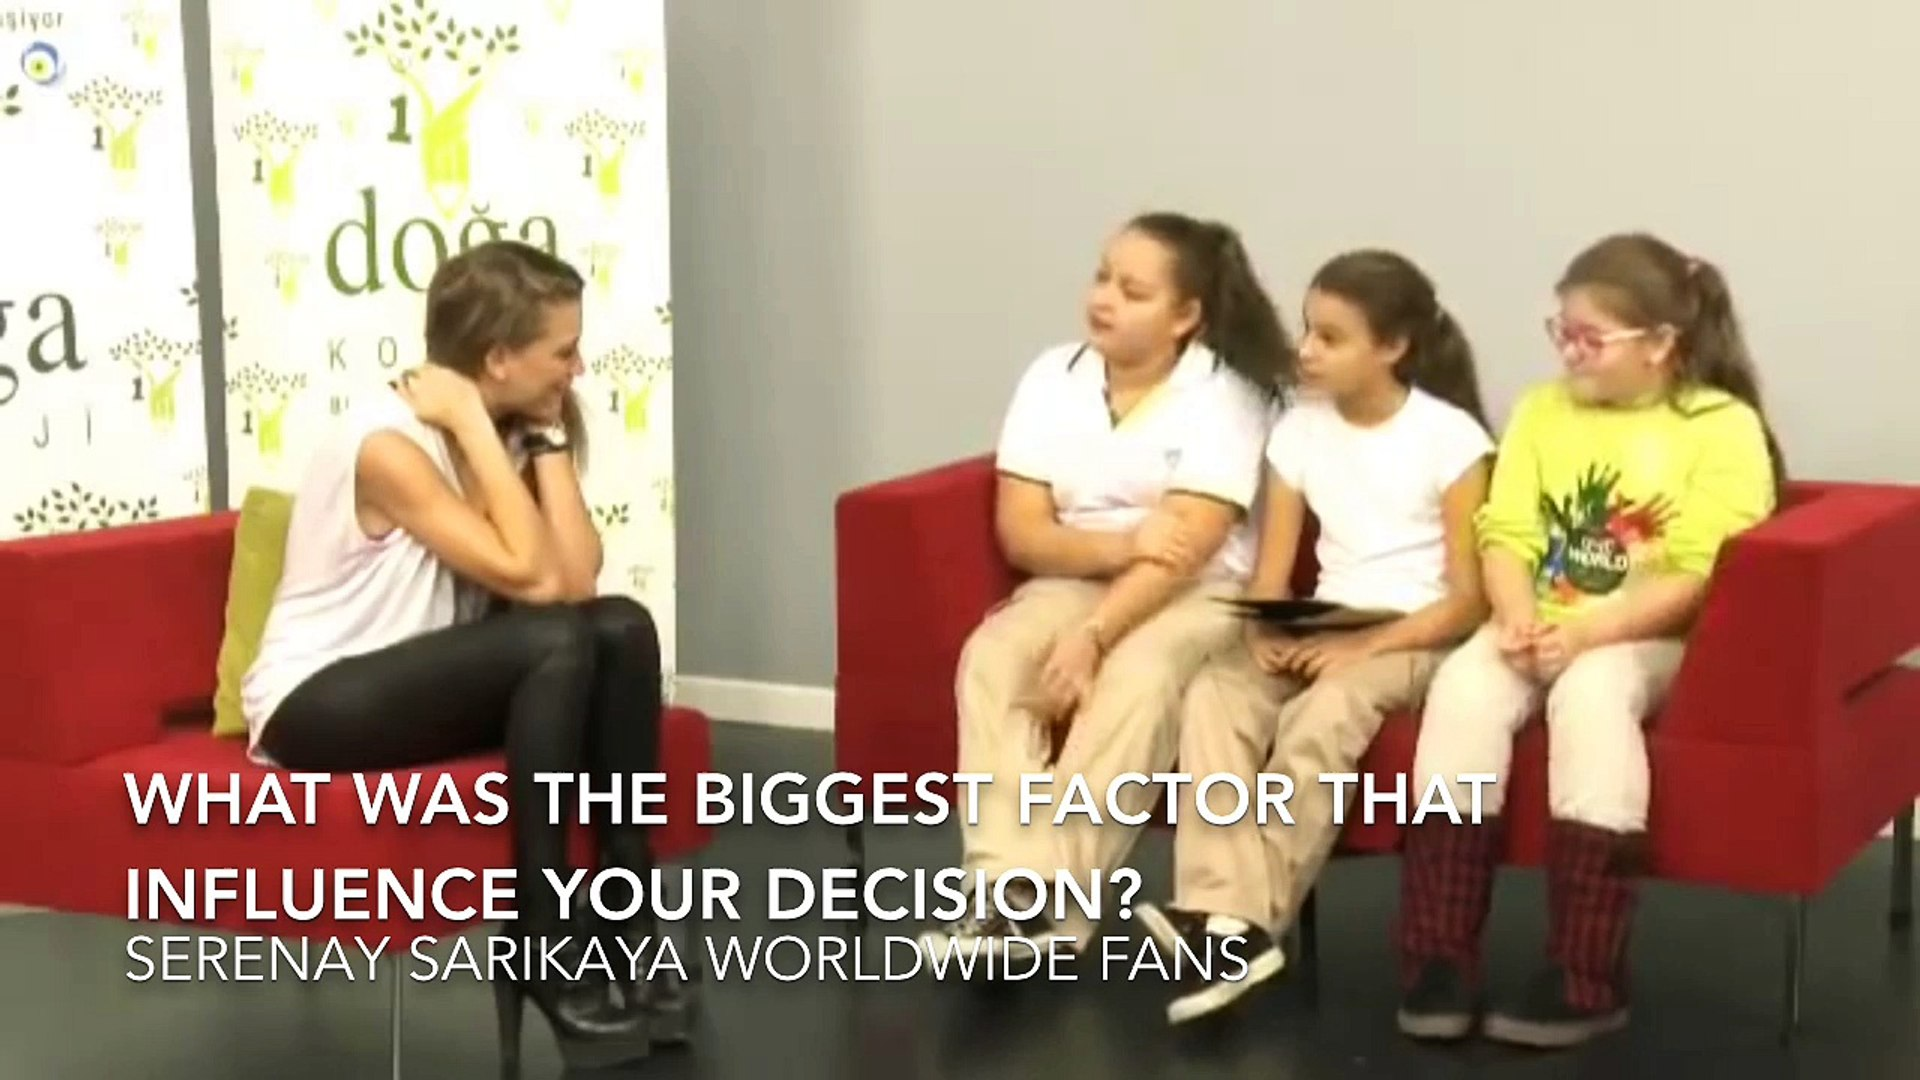 Serenay Sarikaya interview by students of Doga prep school